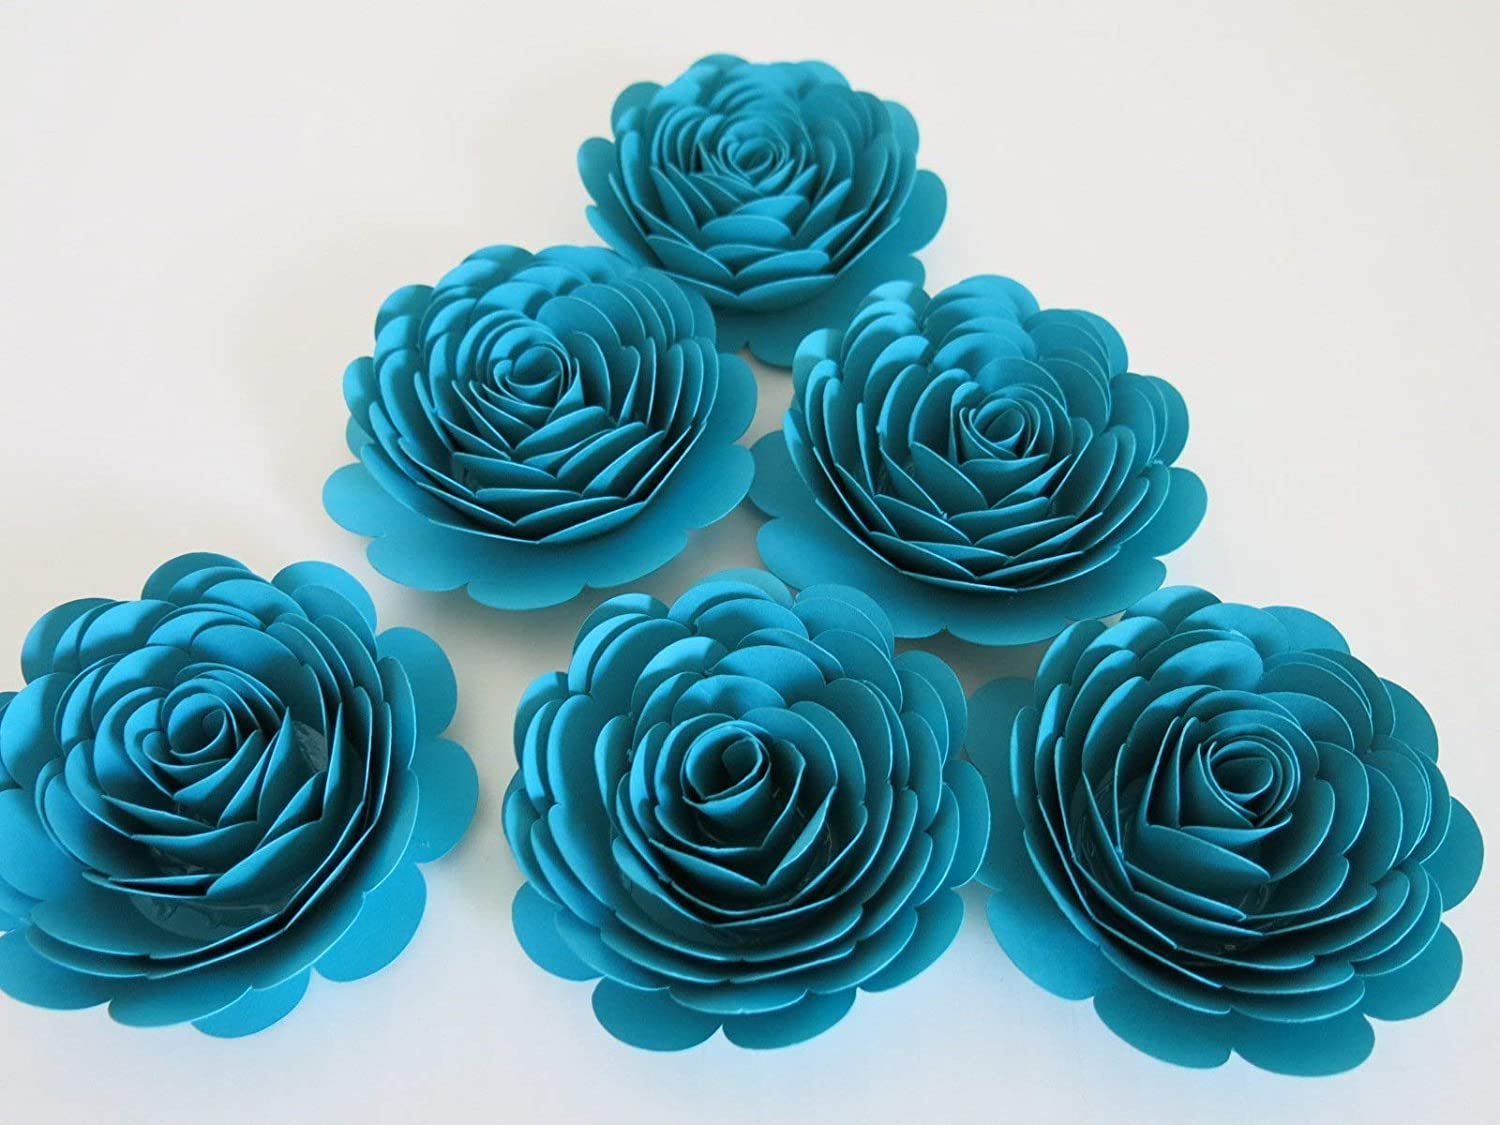 Dark Teal Blue Roses Set of 6 Paper Flowers First Anniversary Gift Idea Bridal Shower Decor Big 3 Blossoms Wedding Reception Table Centerpiece Ideas Always In Blossom